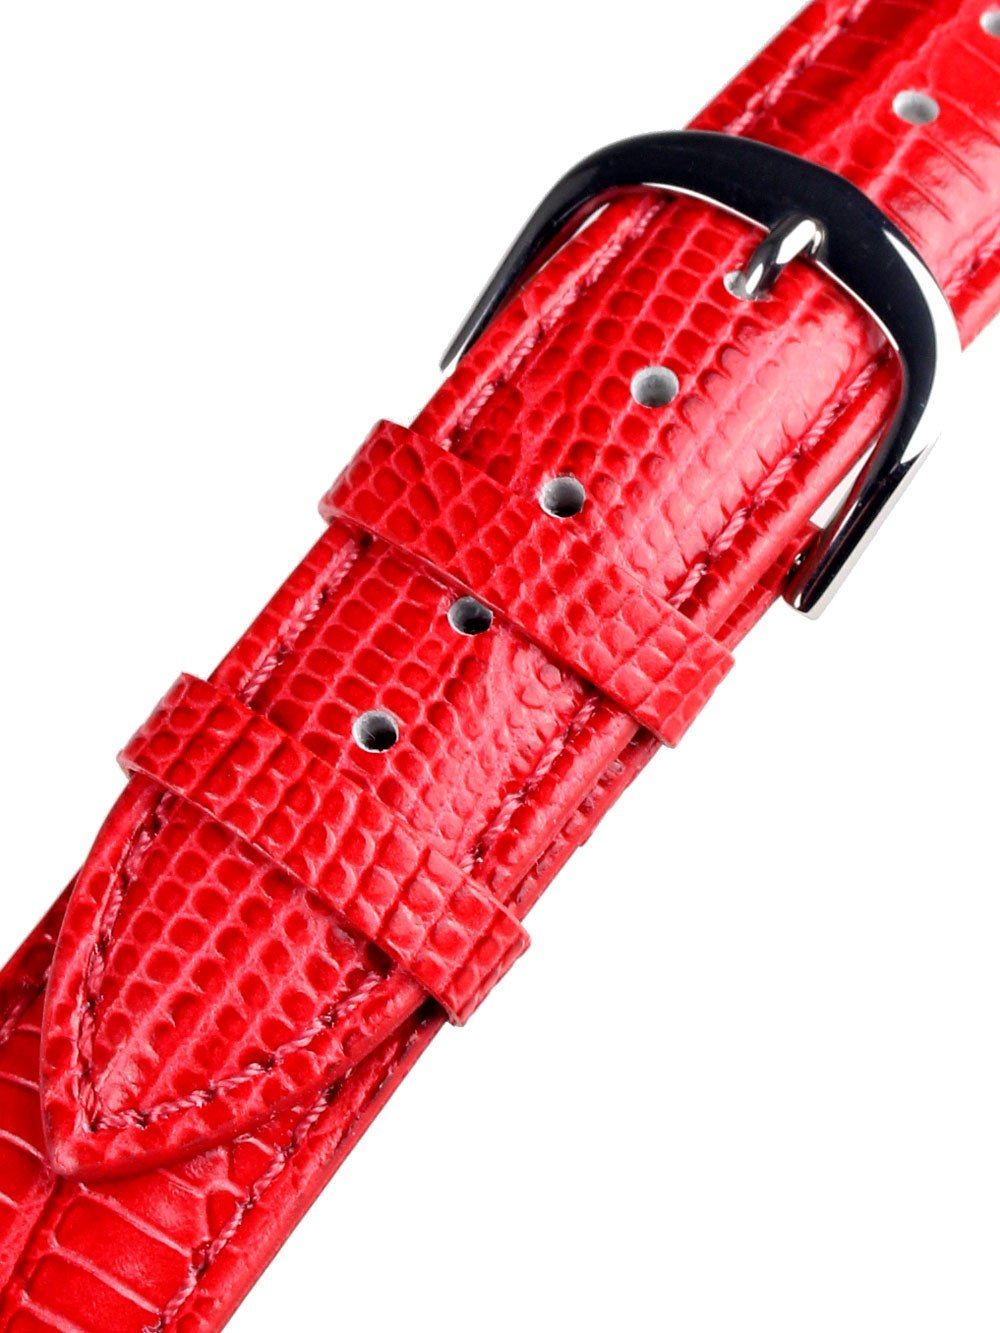 Bossart universal Replacement Strap Leather 20 mm Red, snake